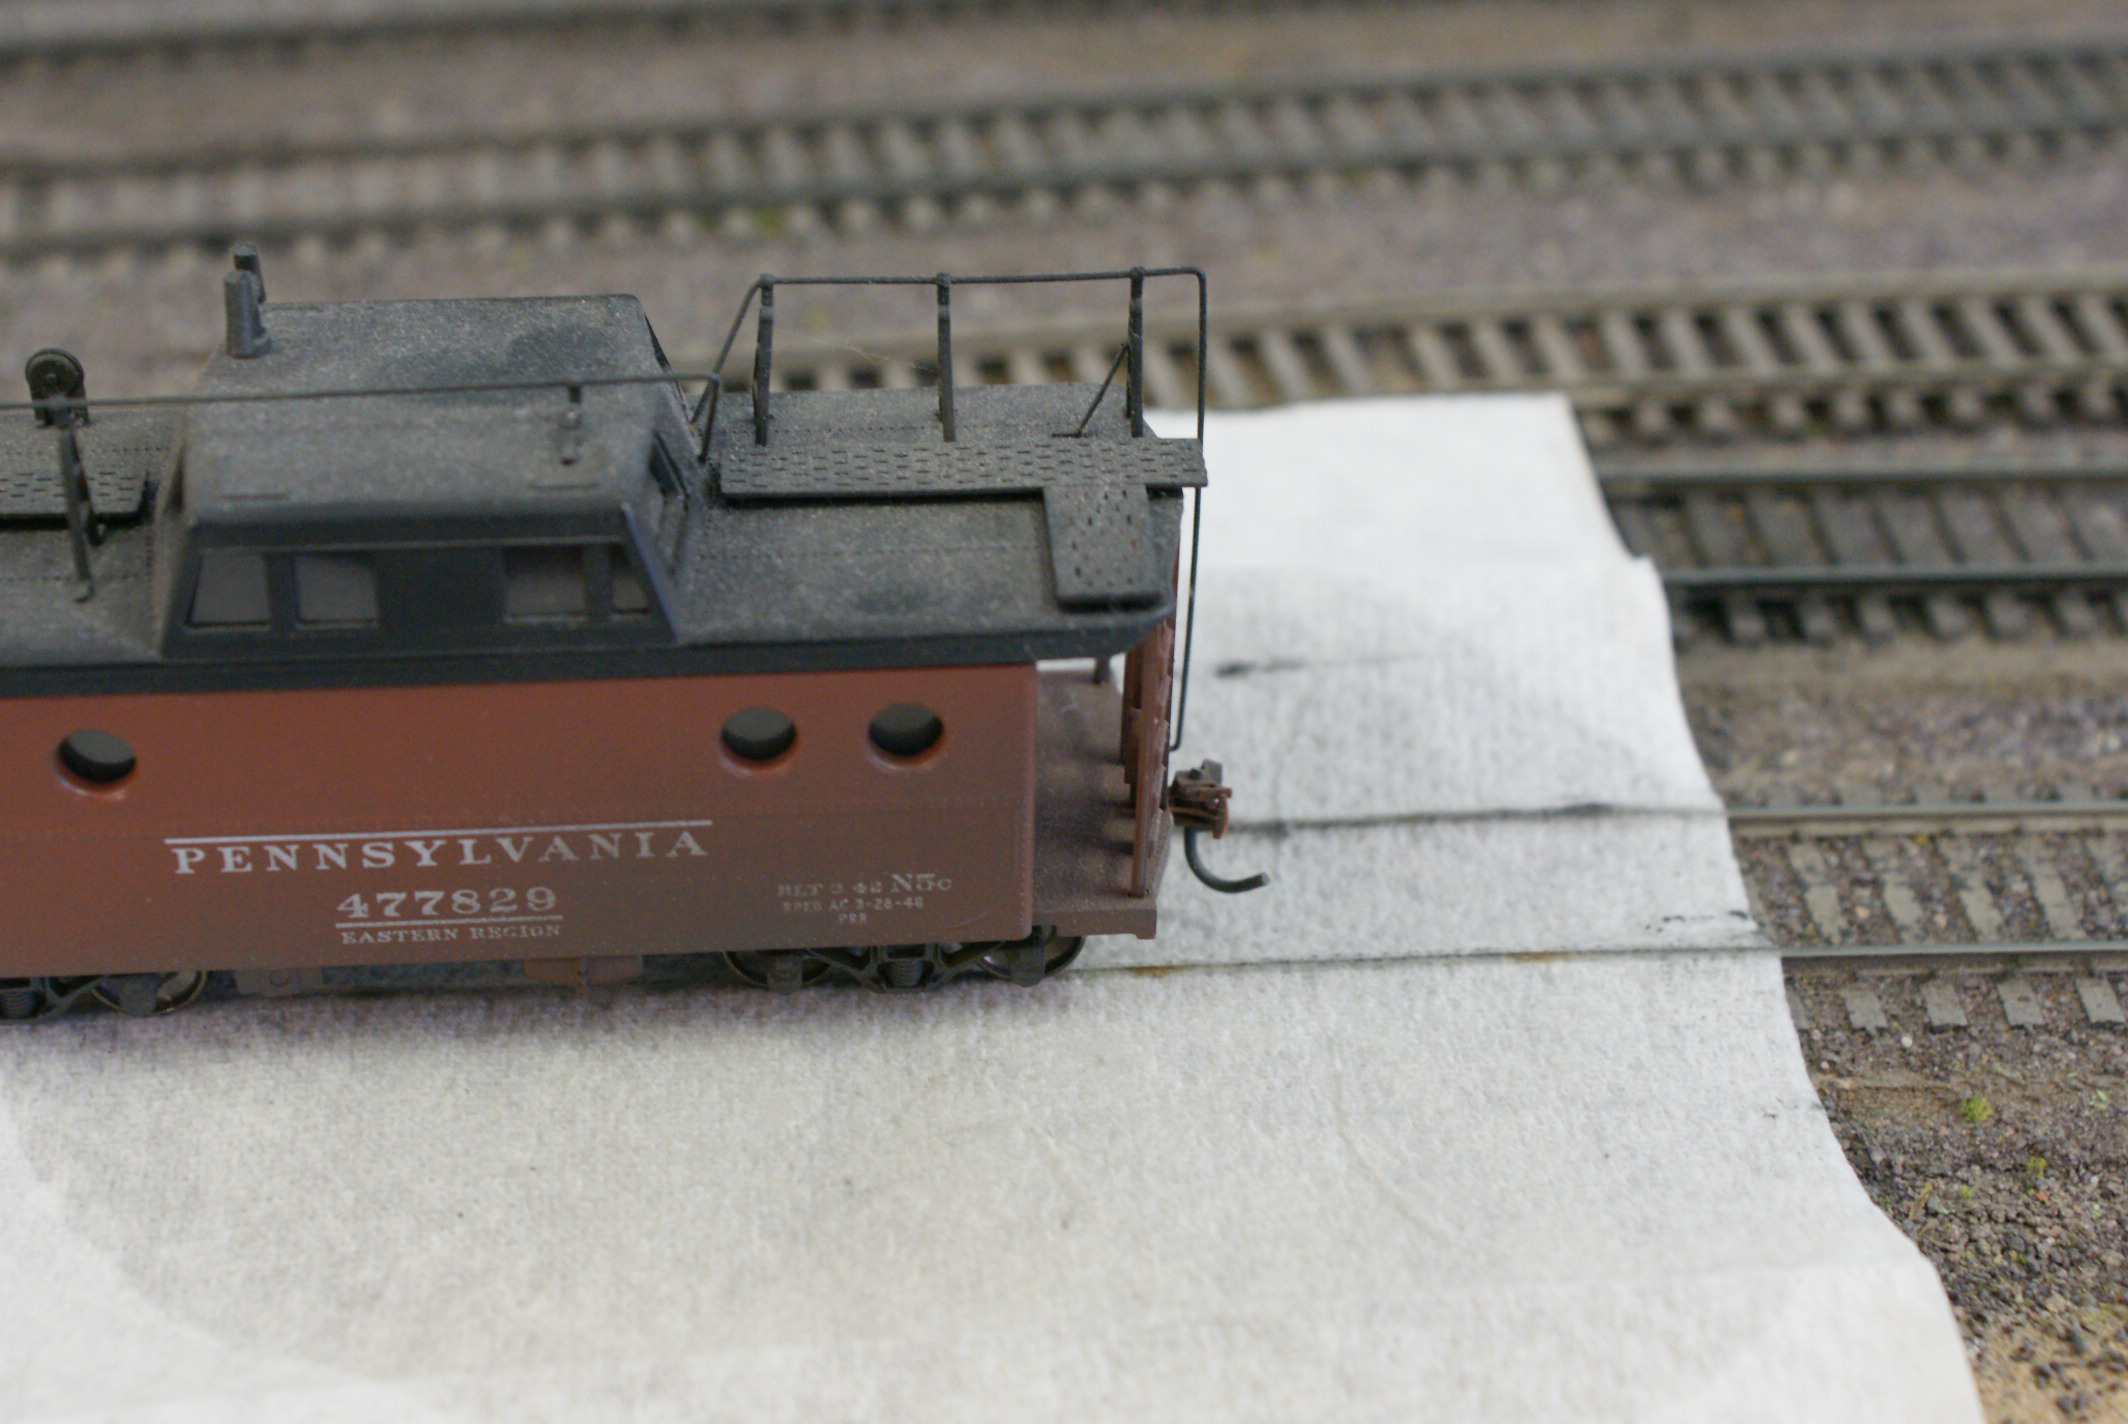 A model train with a paper towel on the track